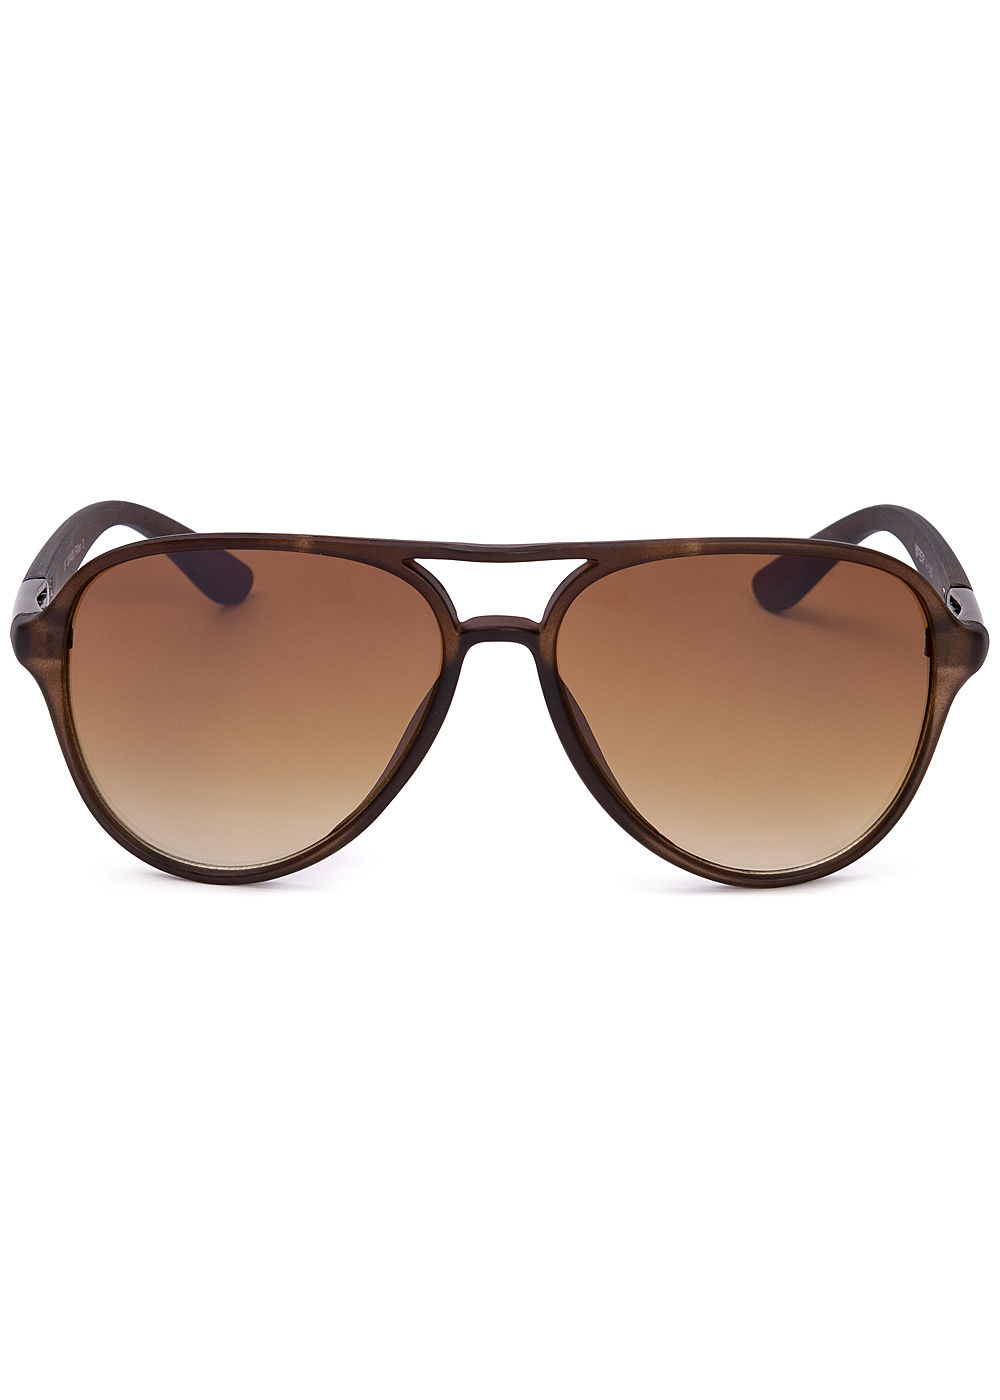 Seventyseven Lifestyle Unisex Retro Pilot Sunglasses Cat. 3 UV-400 Protection braun - Art.-Nr.: 19062427-OS-BR